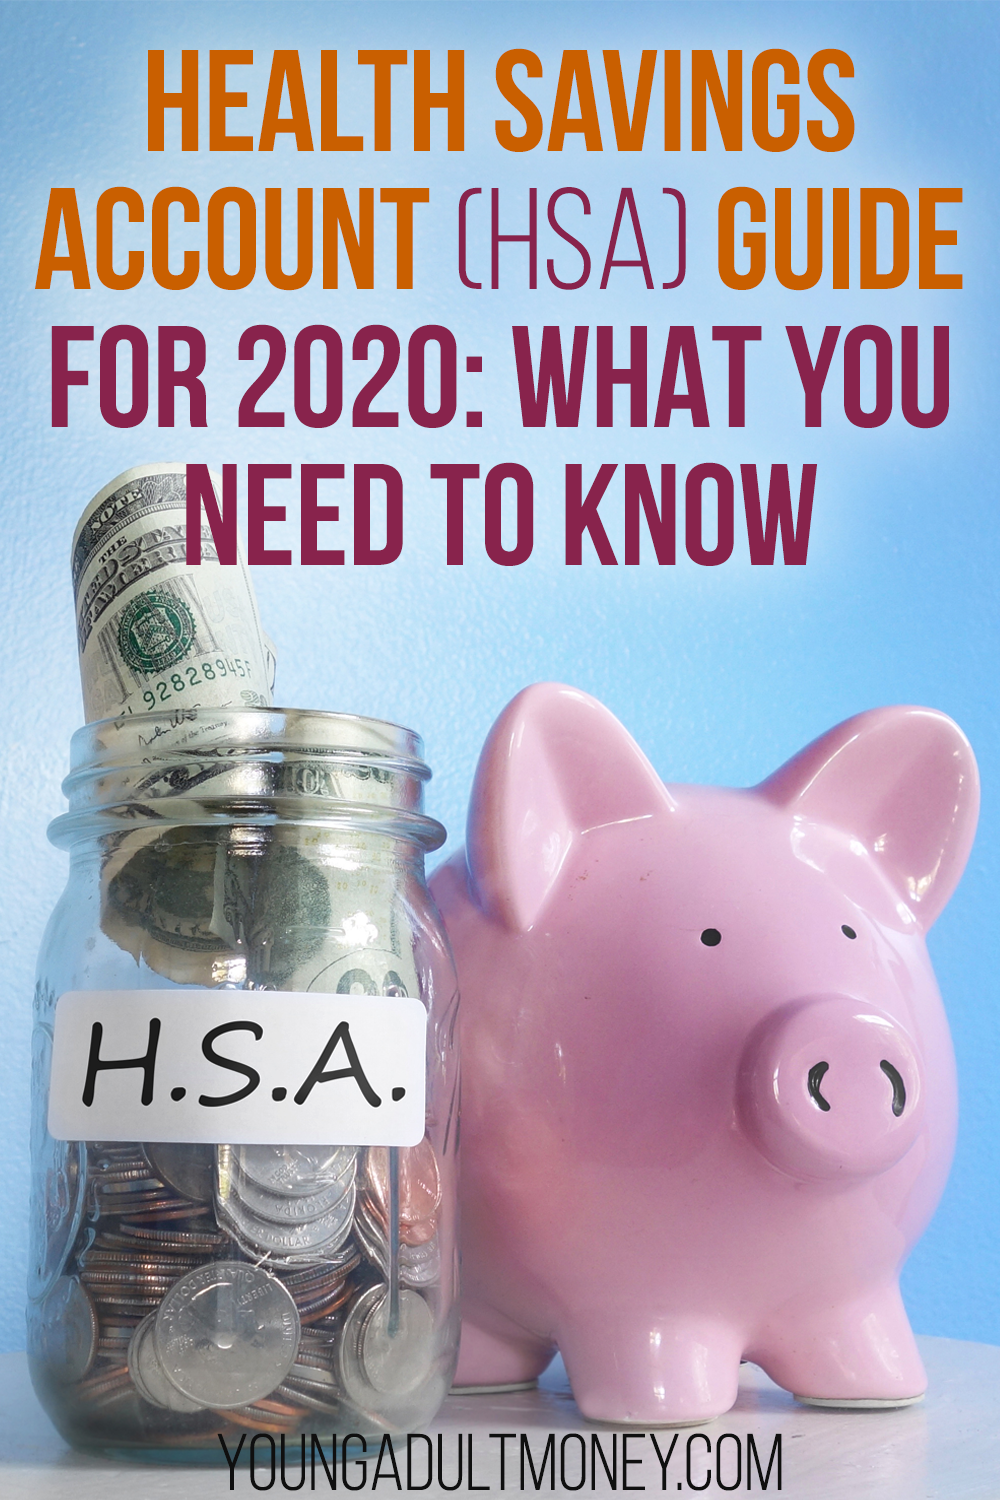 Health Savings Account Hsa Guide For 2020 In 2020 Health